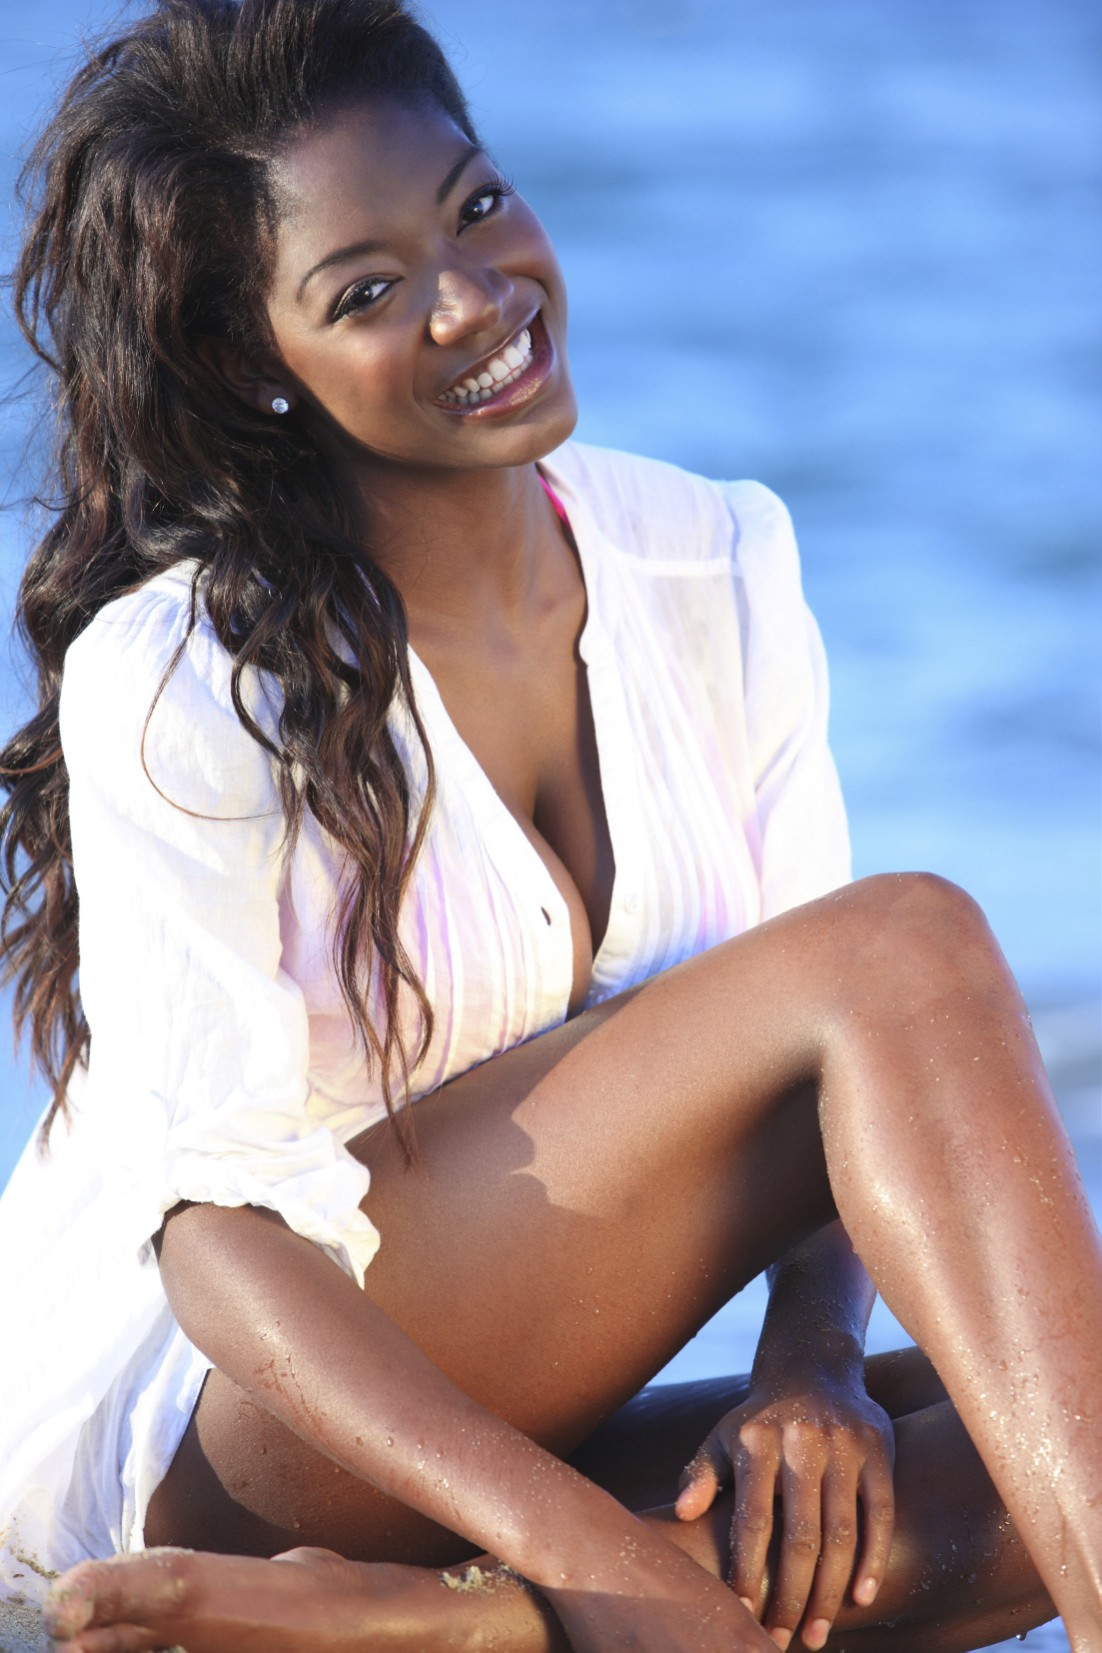 Sensual and charming guyanese brides for american men